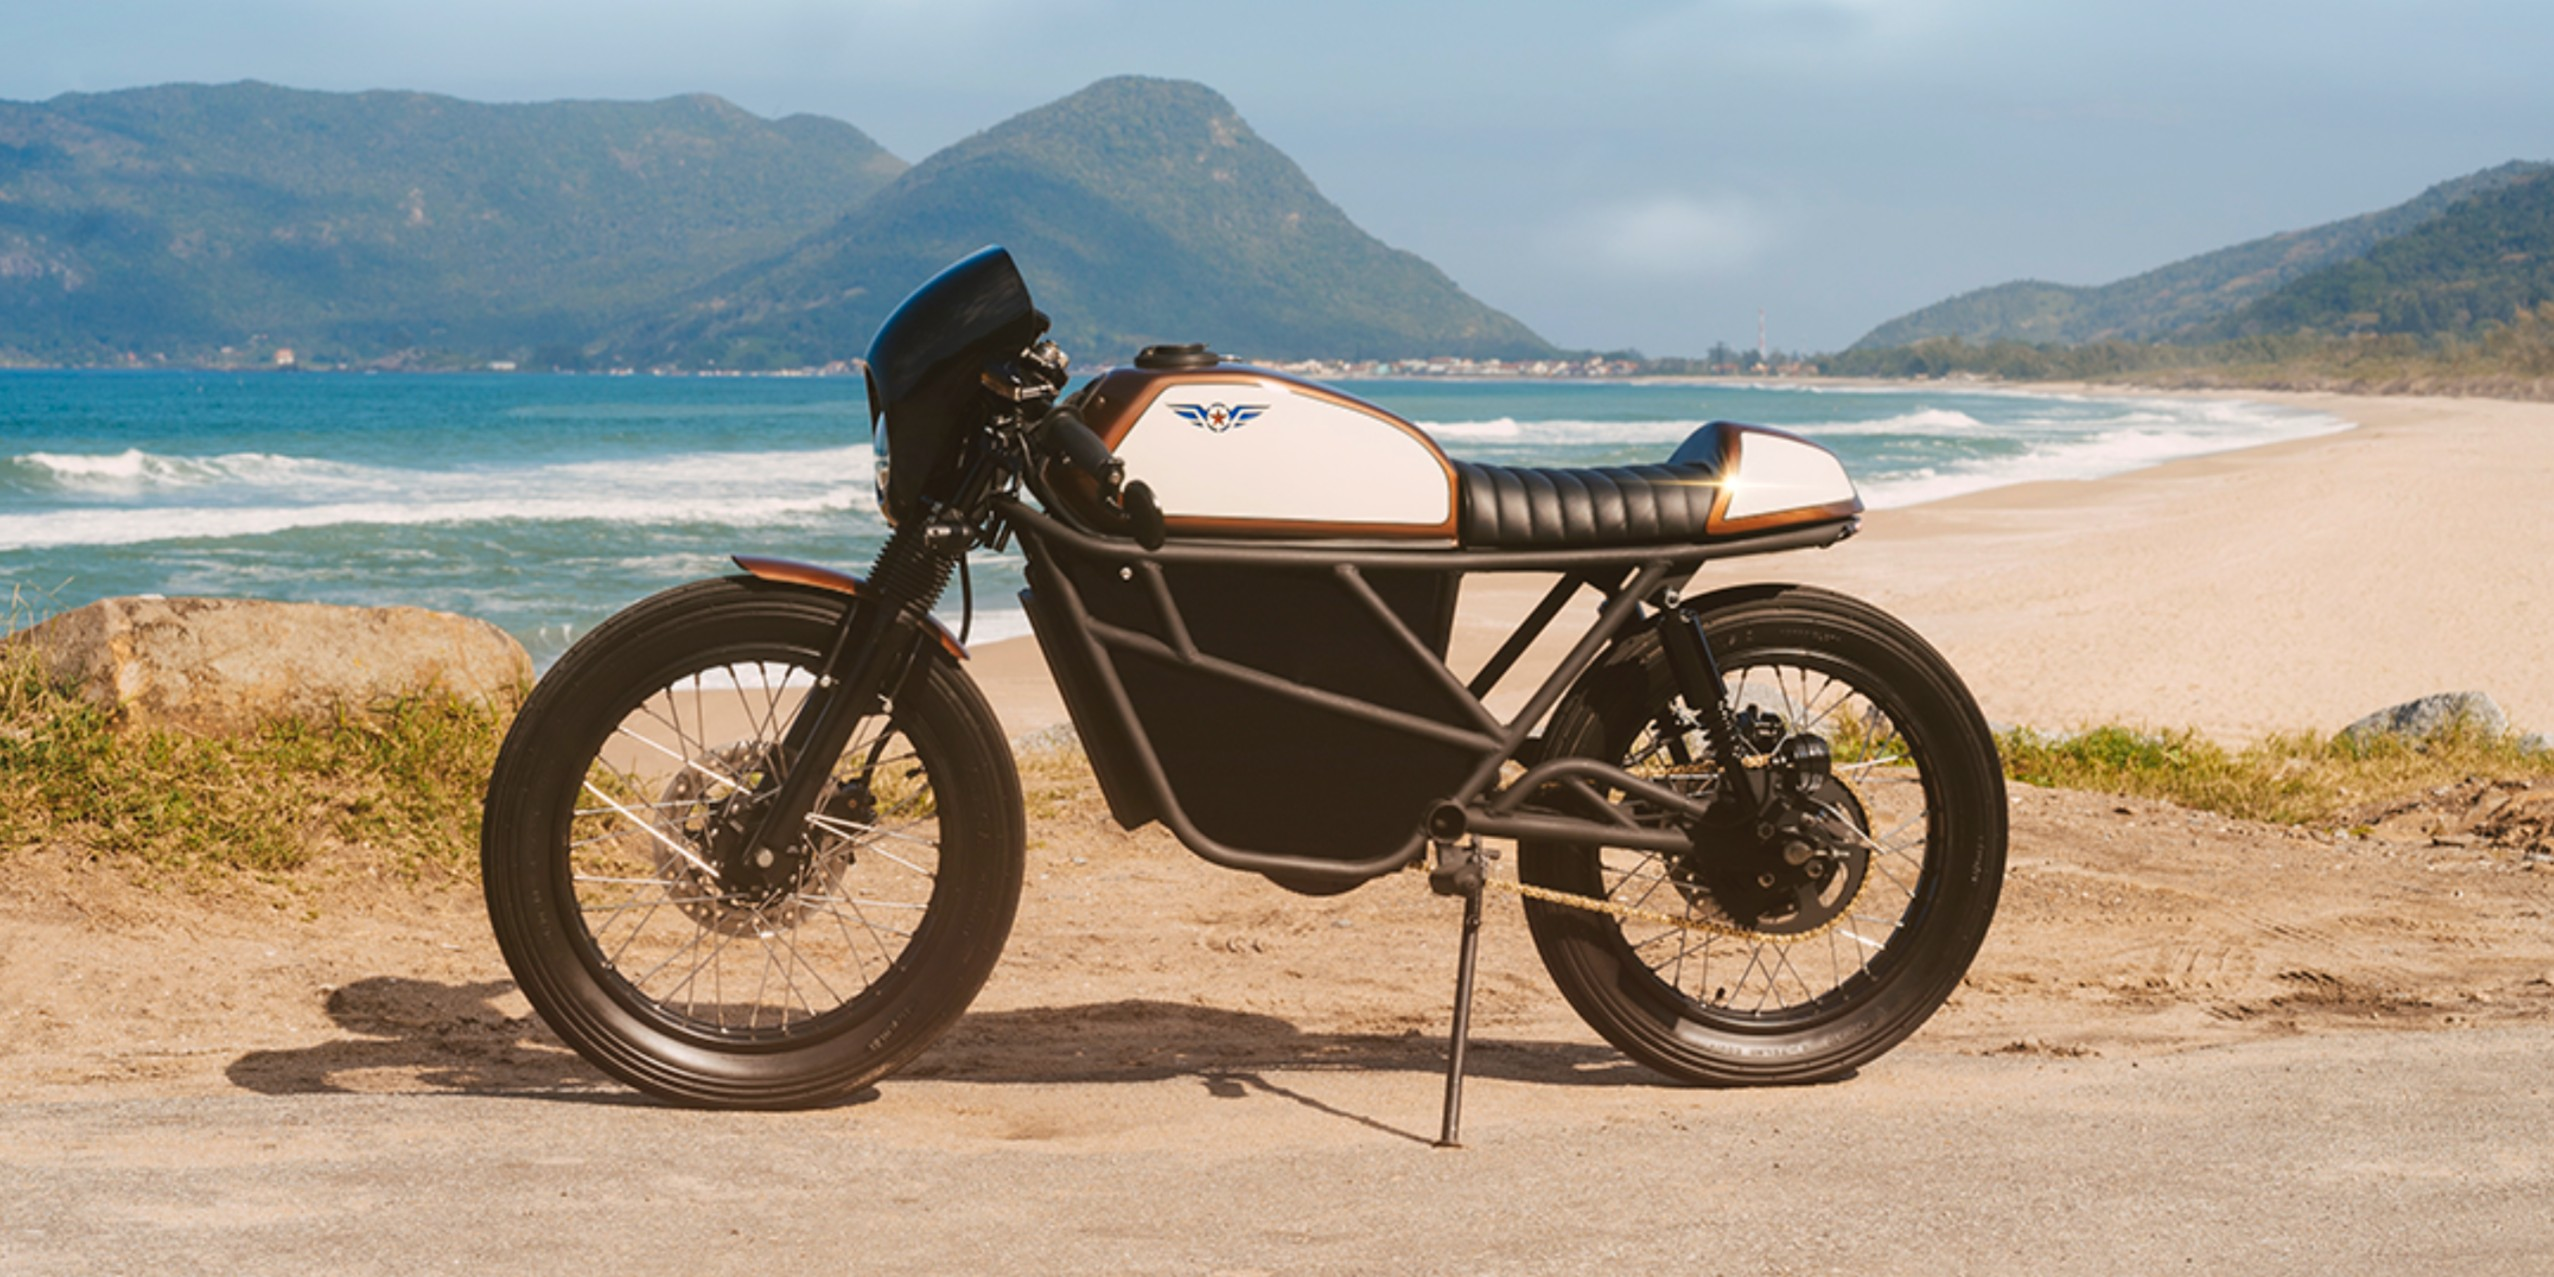 Smart Classic electric motorcycle hits 50 mph and 100 mile range, prepares for US orders